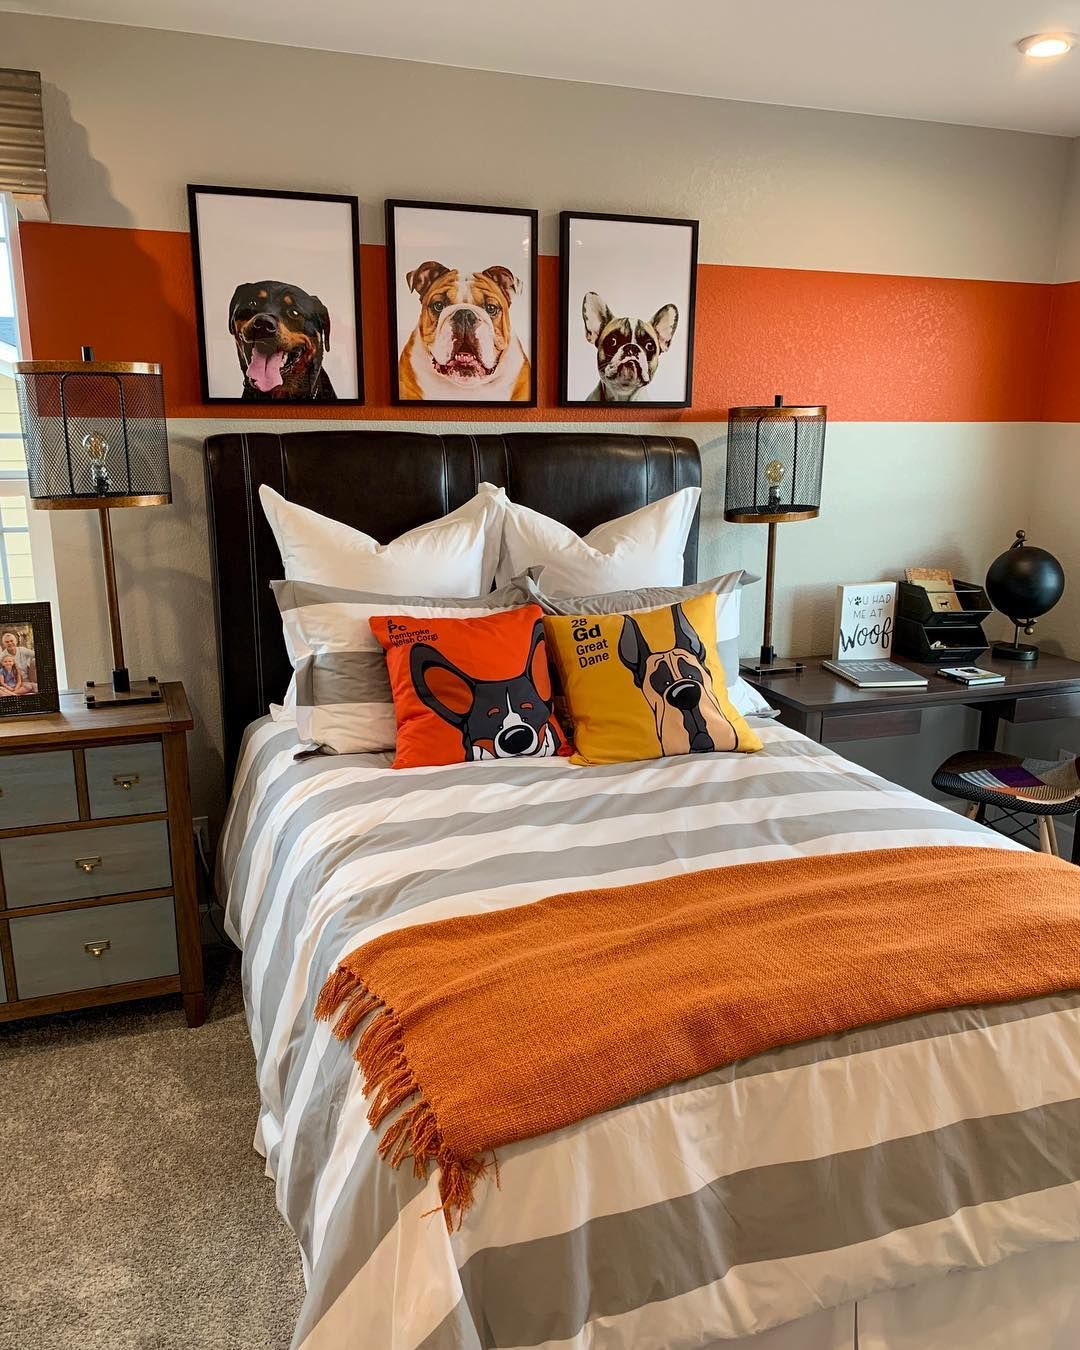 What A Cute Dog Themed Bedroom Bedroom Themes Cat Themed Bedroom Dog Bedroom